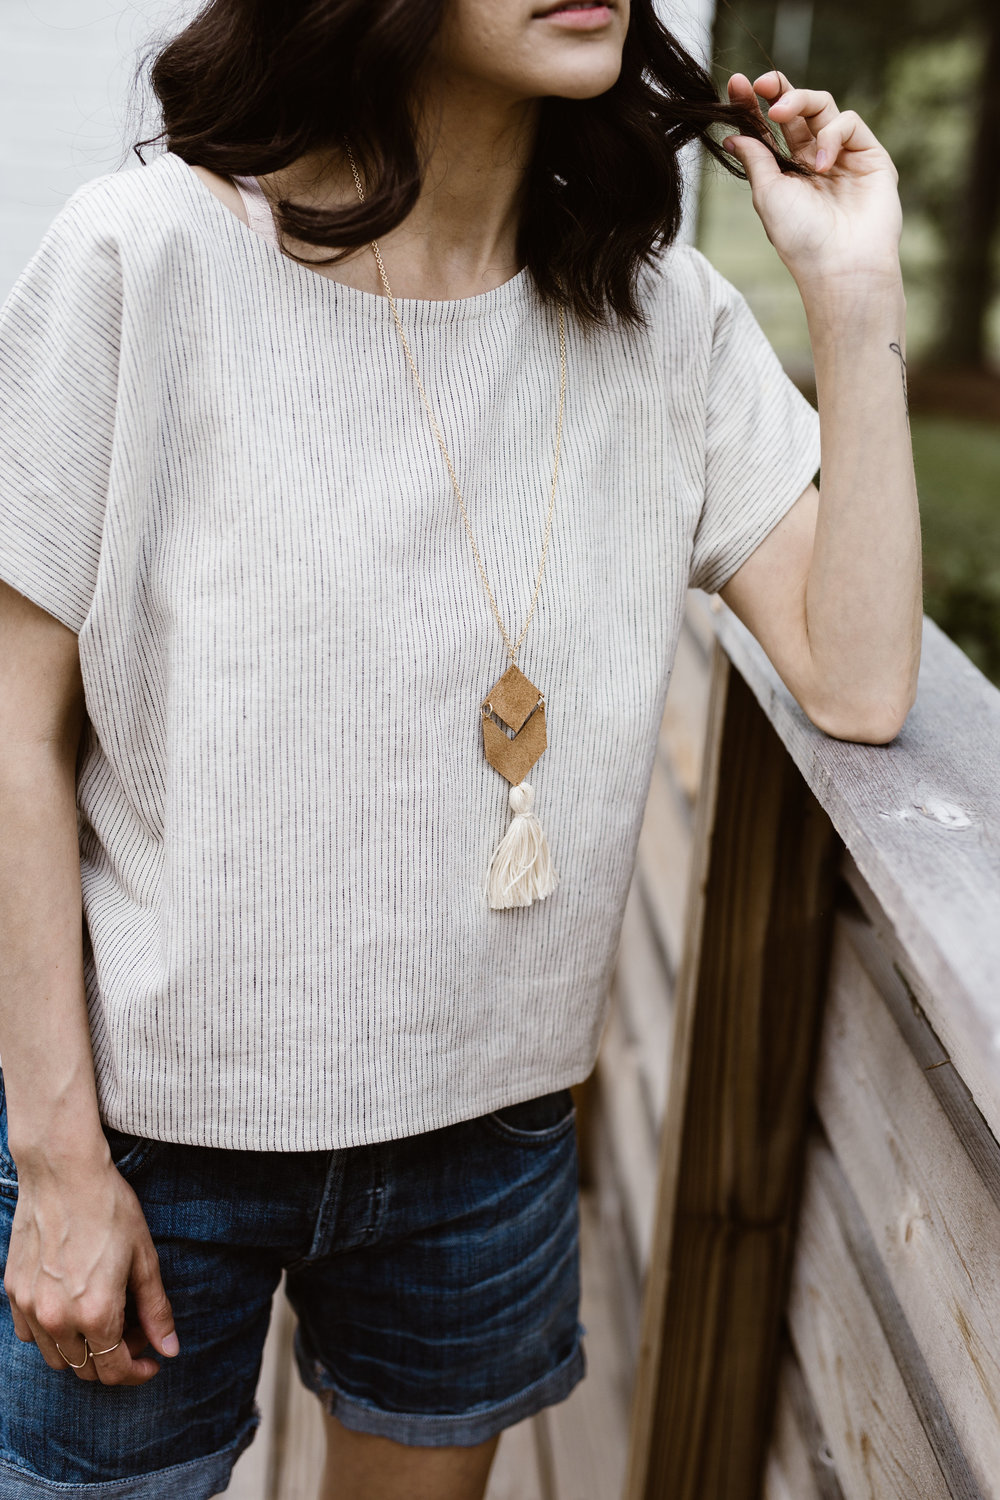 Wearing: Two Fold Krissy tee and  Sela Designs Belle Necklace